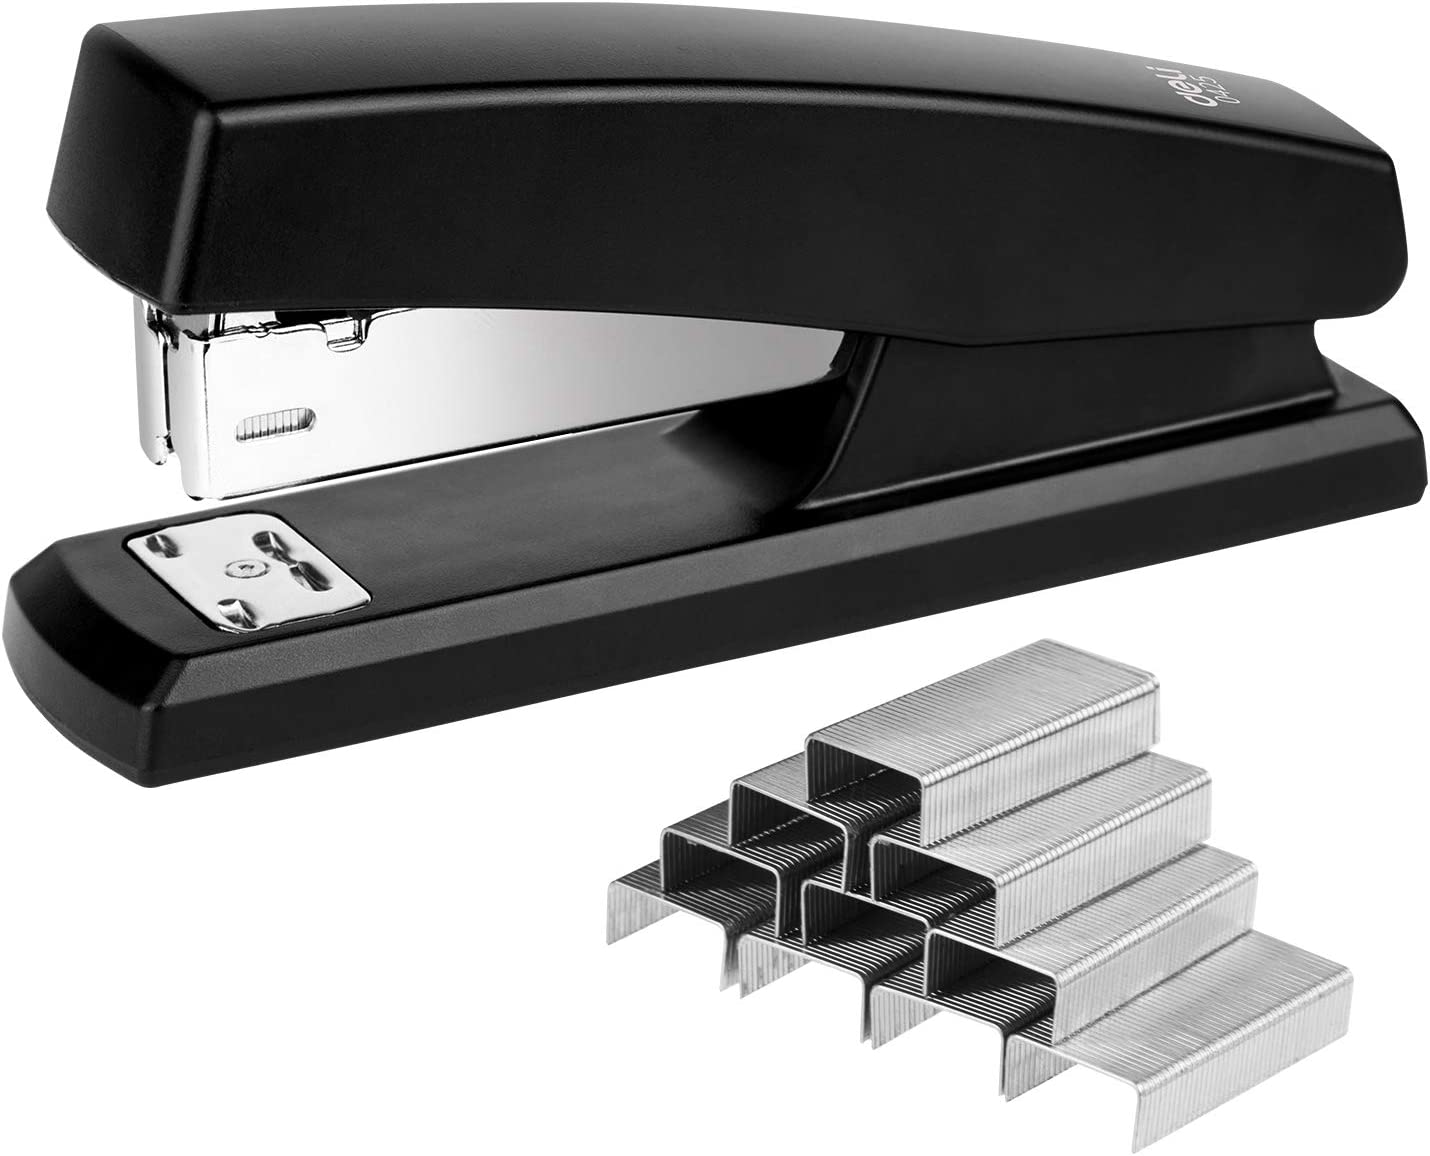 Deli Stapler, Desktop Staplers with 640 Staples, Office Stapler, 25 Sheet Capacity, Black